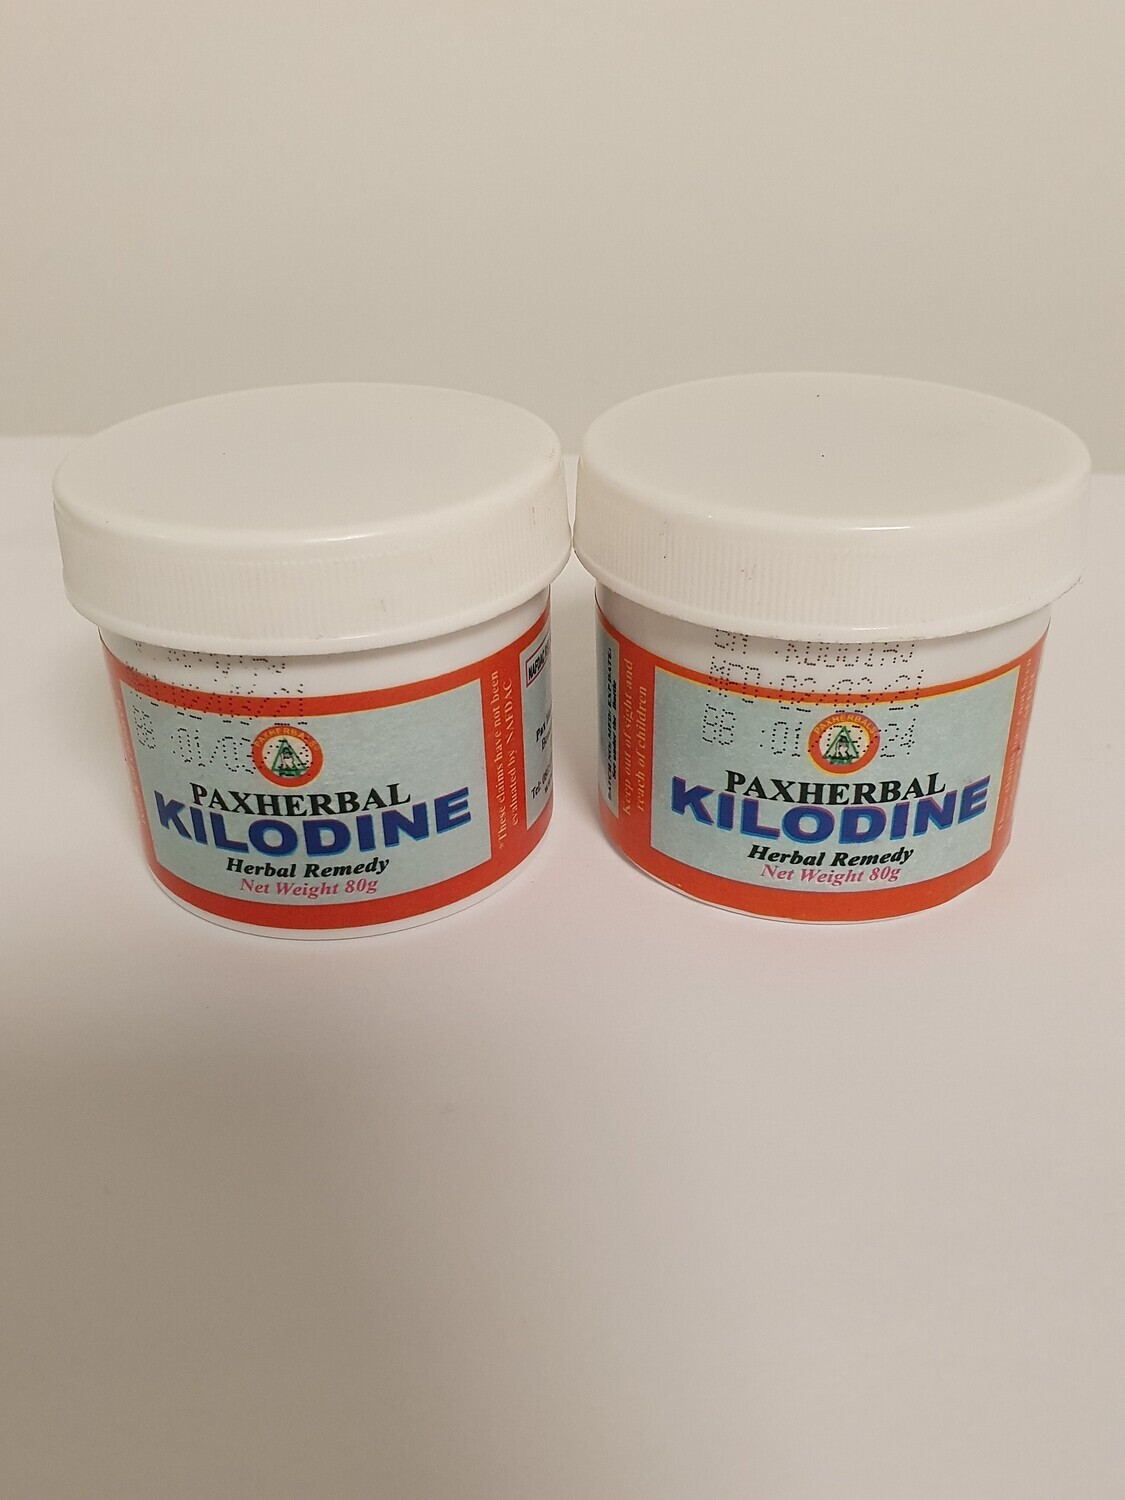 Paxherbal Kilodine for Keloid and Rheumatism-80g